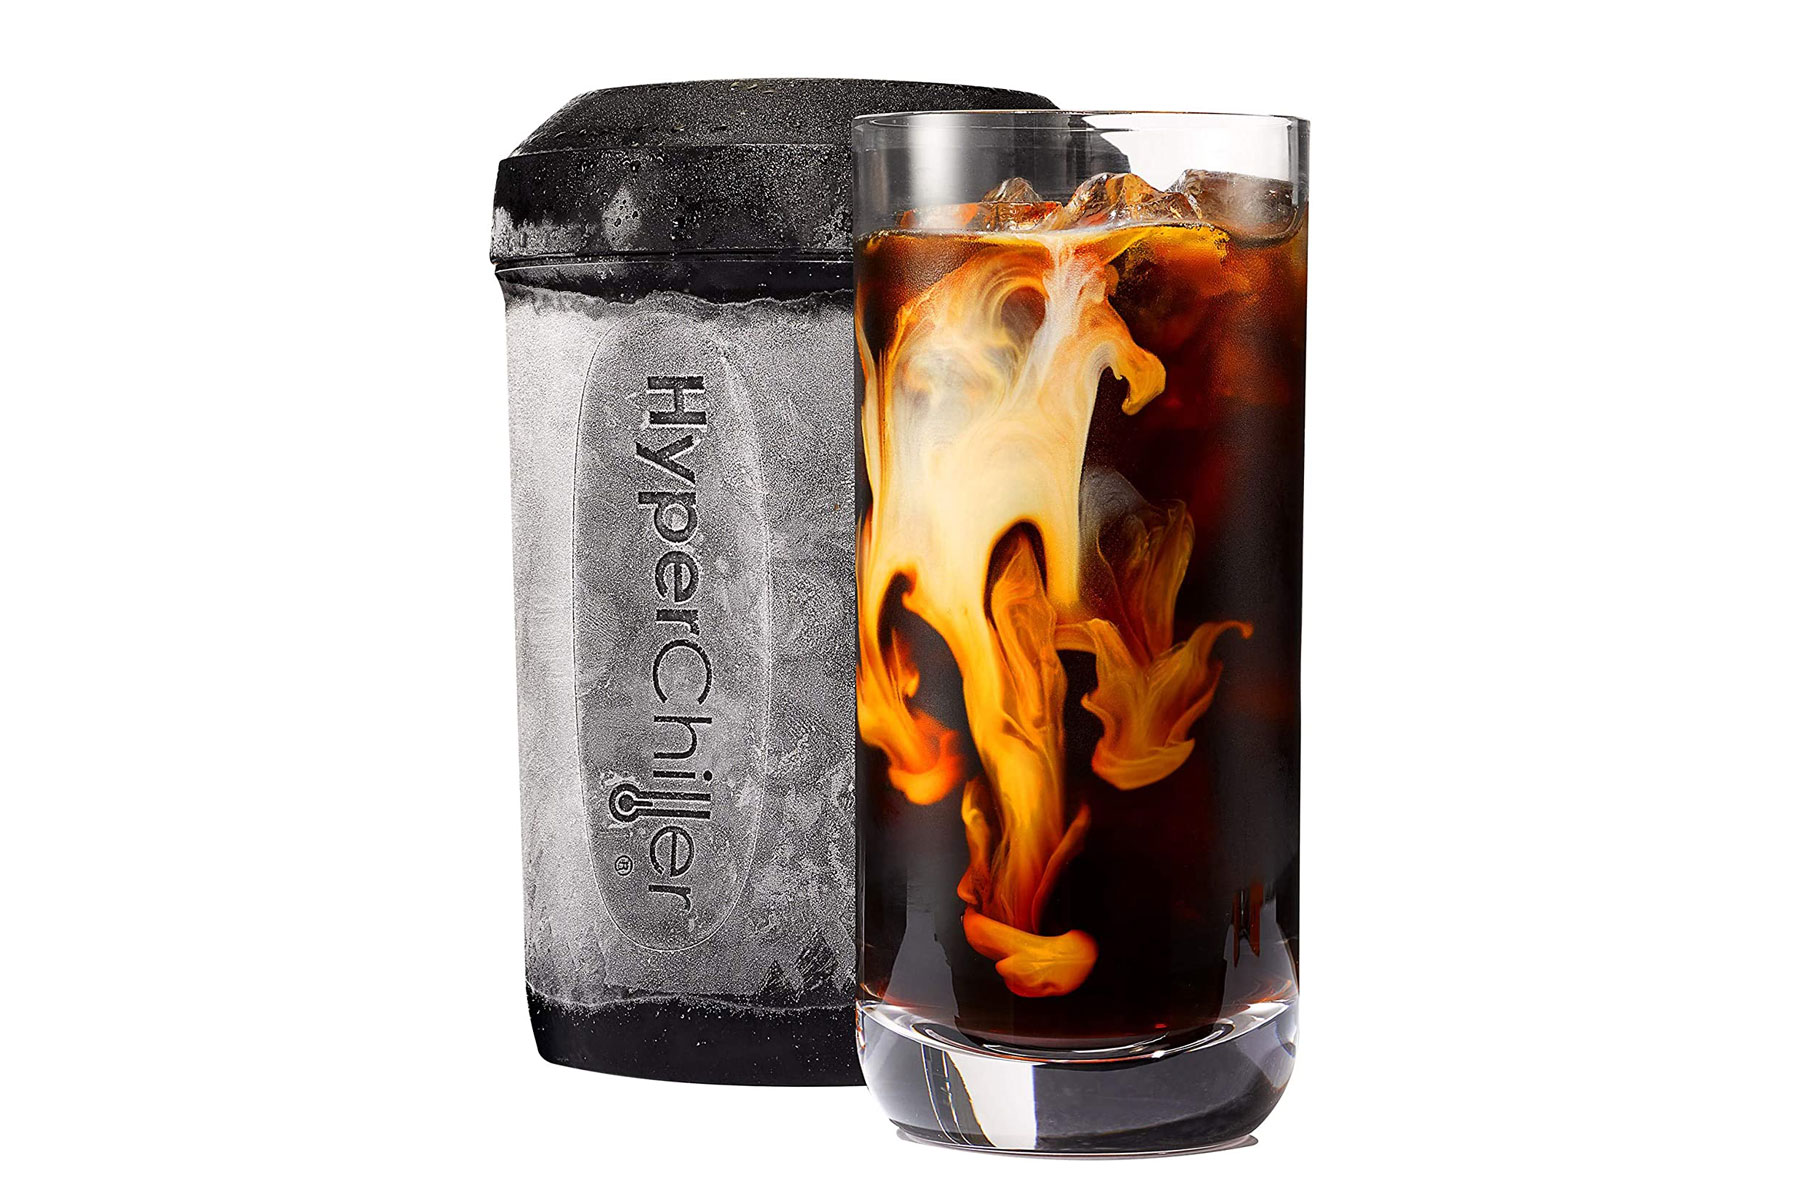 Chiller device and iced coffee in glass